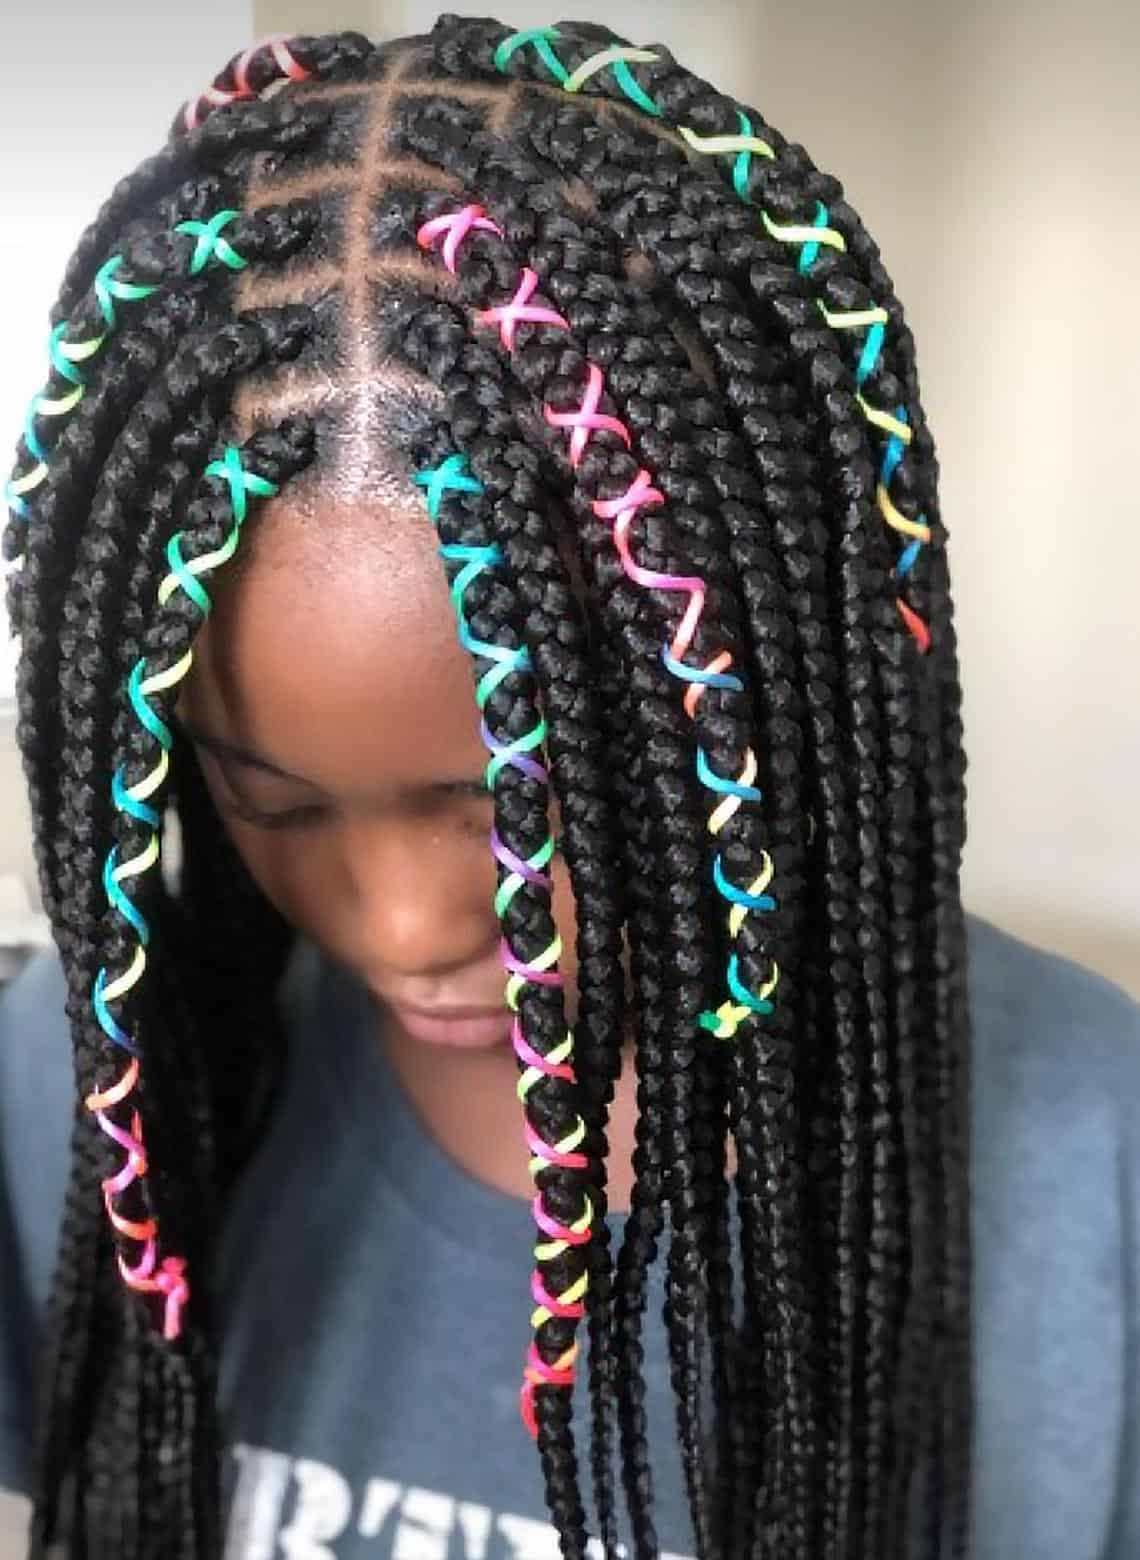 woman with braids and colorful rubber brands